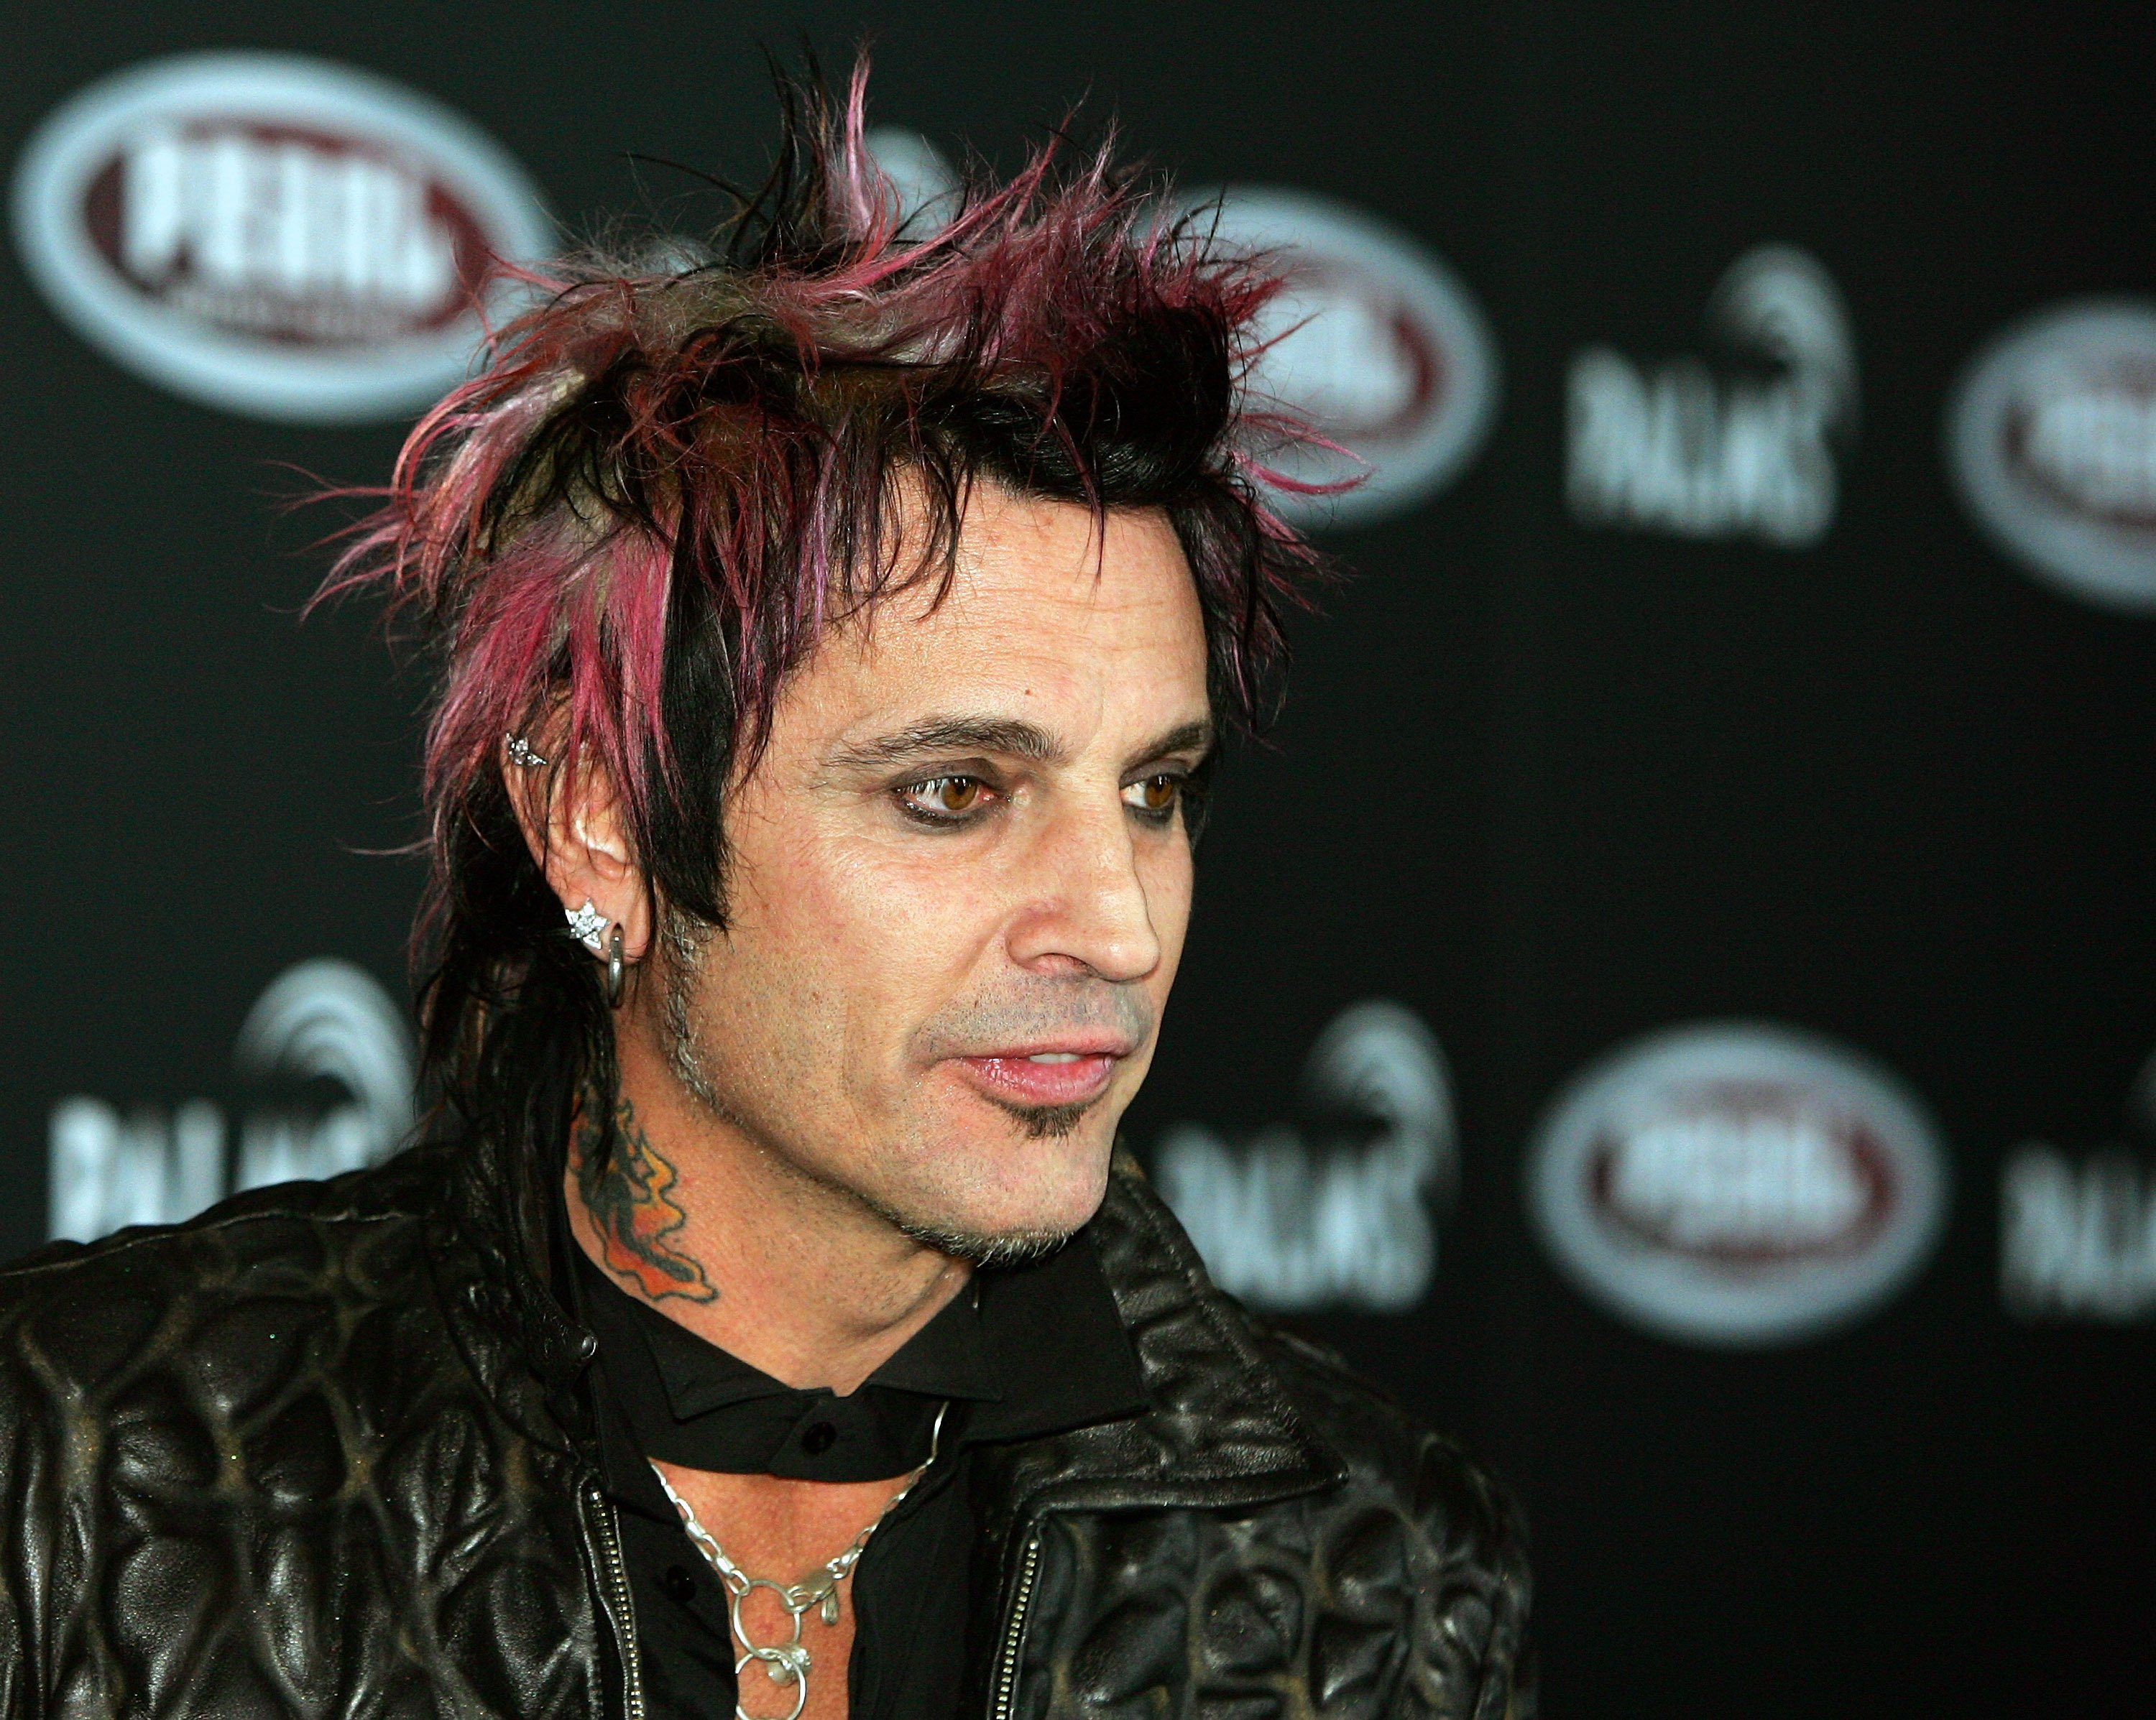 Tommy Lee arrives at the Palms Casino Resort April 21, 2007, in Las Vegas, Nevada. | Source: Getty Images.